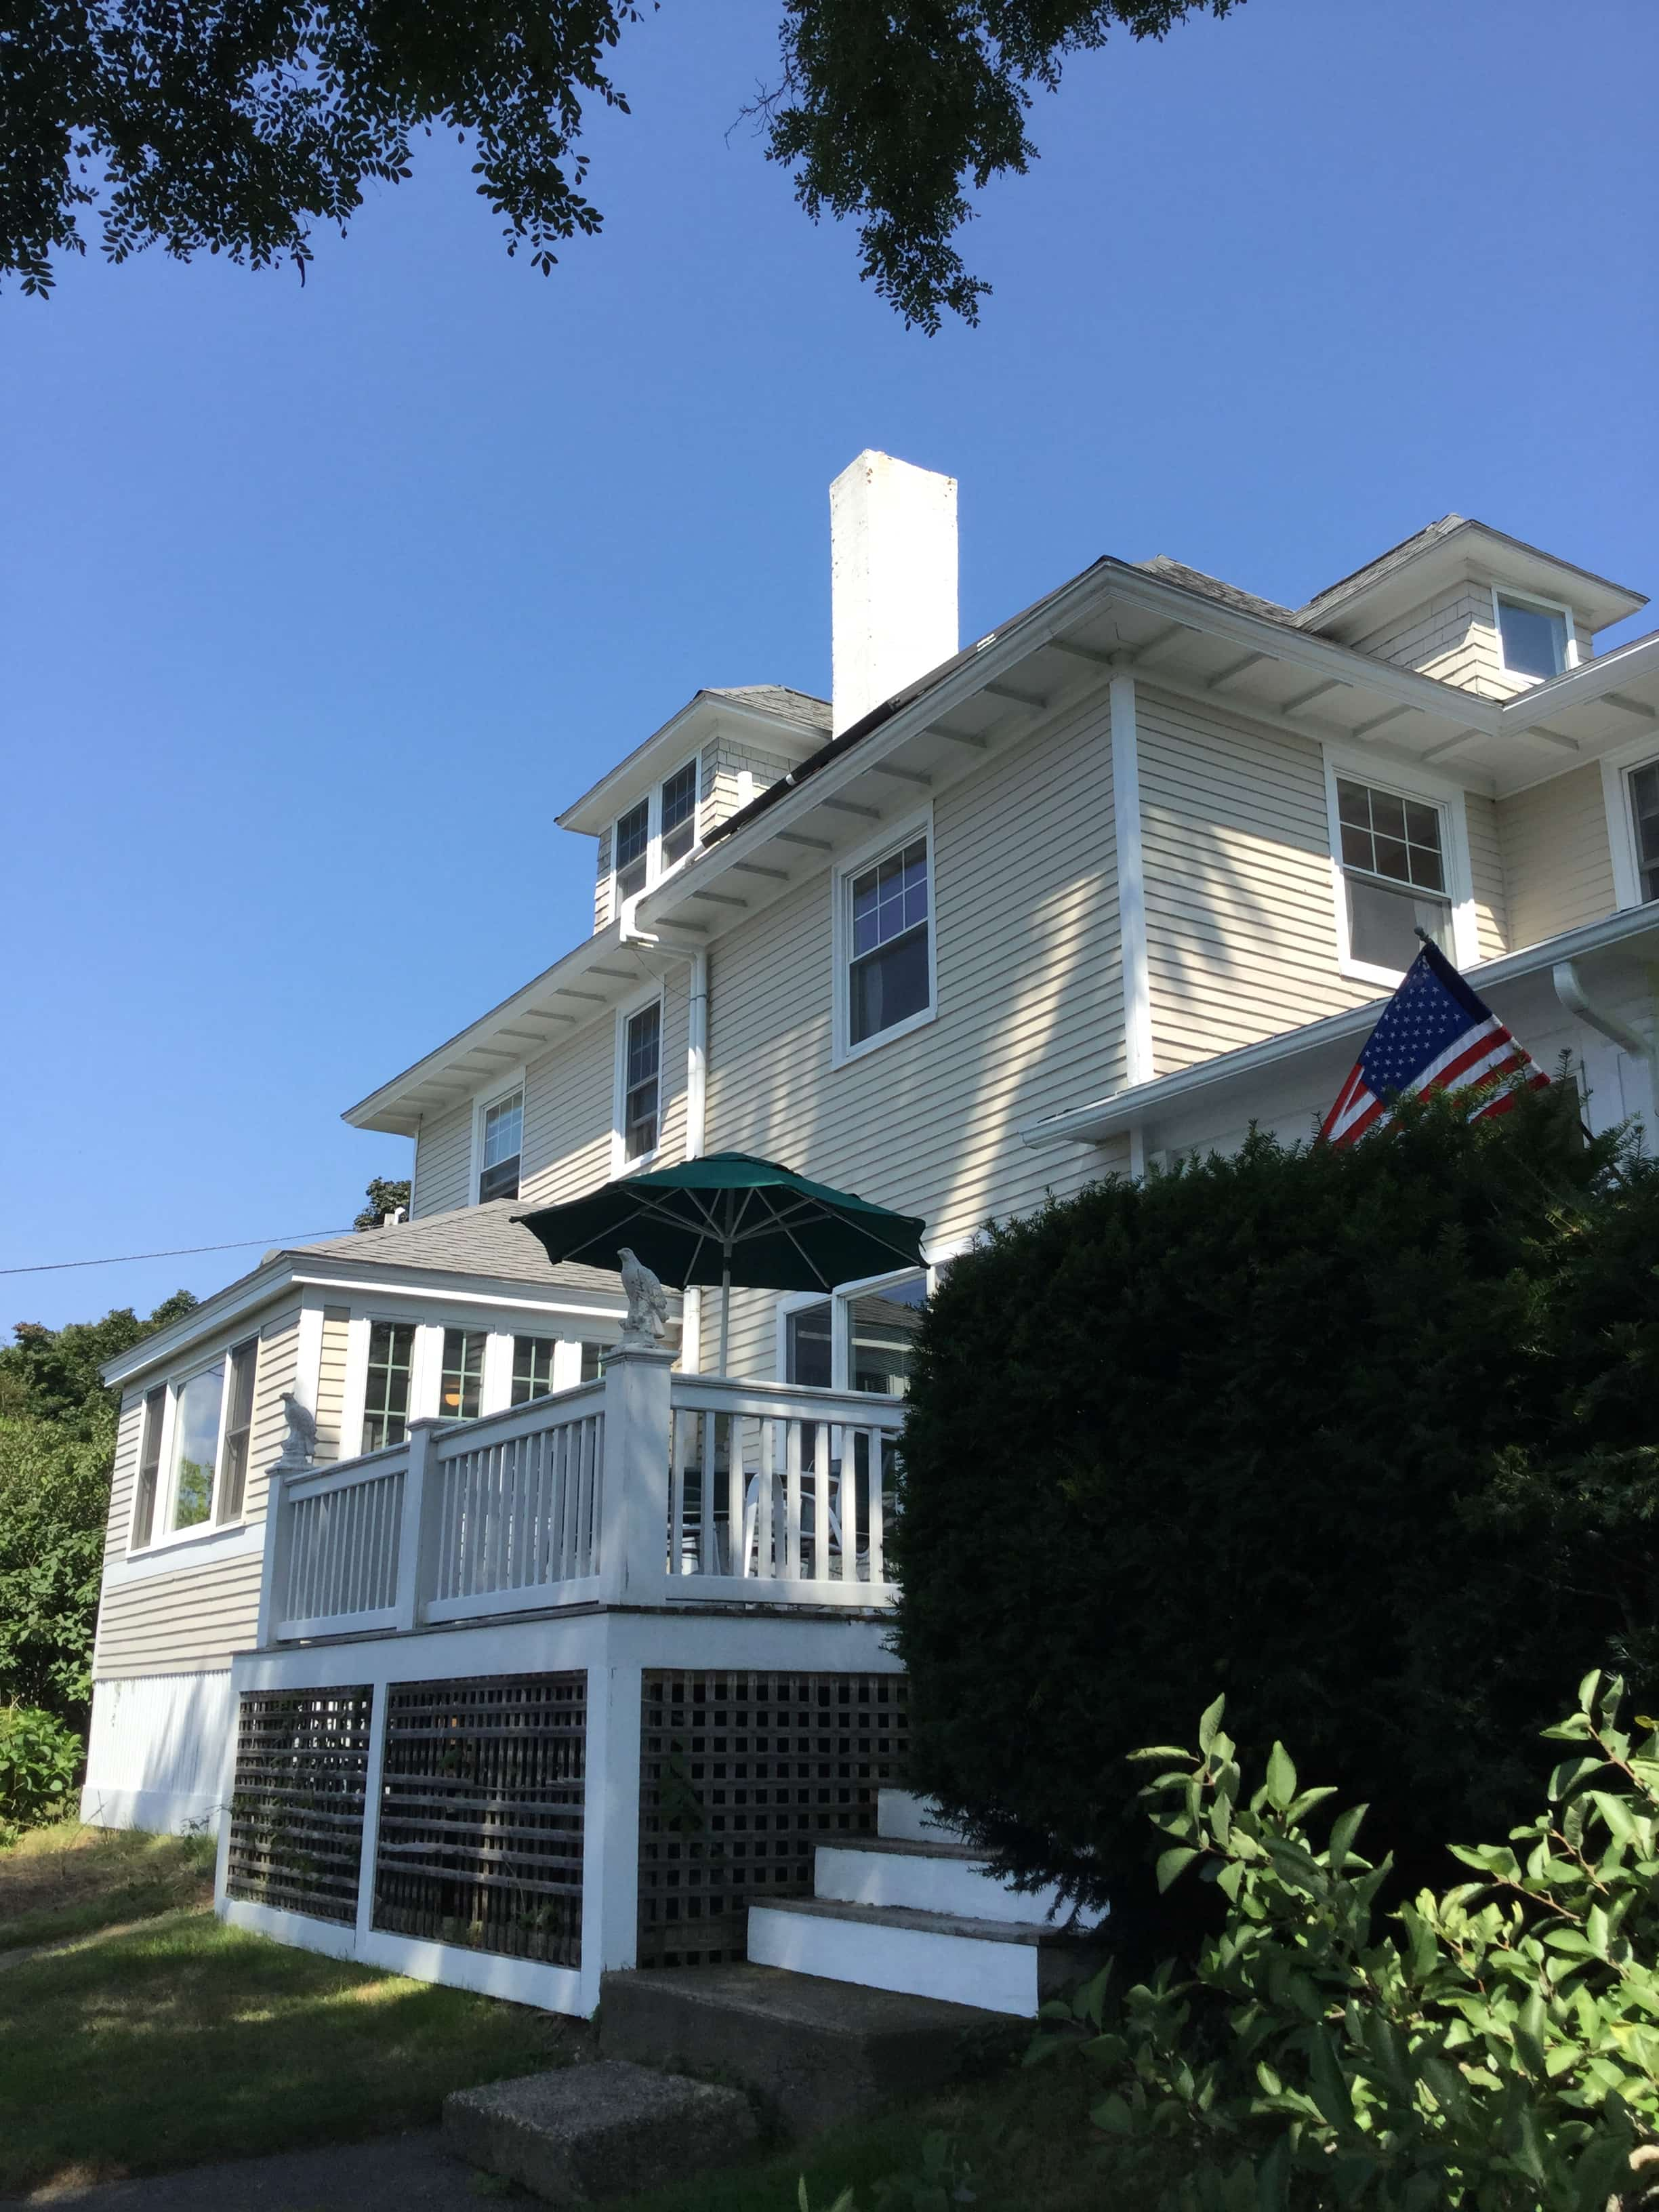 lakefront cottages vacation the of sale getaways lakes htm deck waterfront ponds vol from maine and for homes pano views photos pondfront scenic